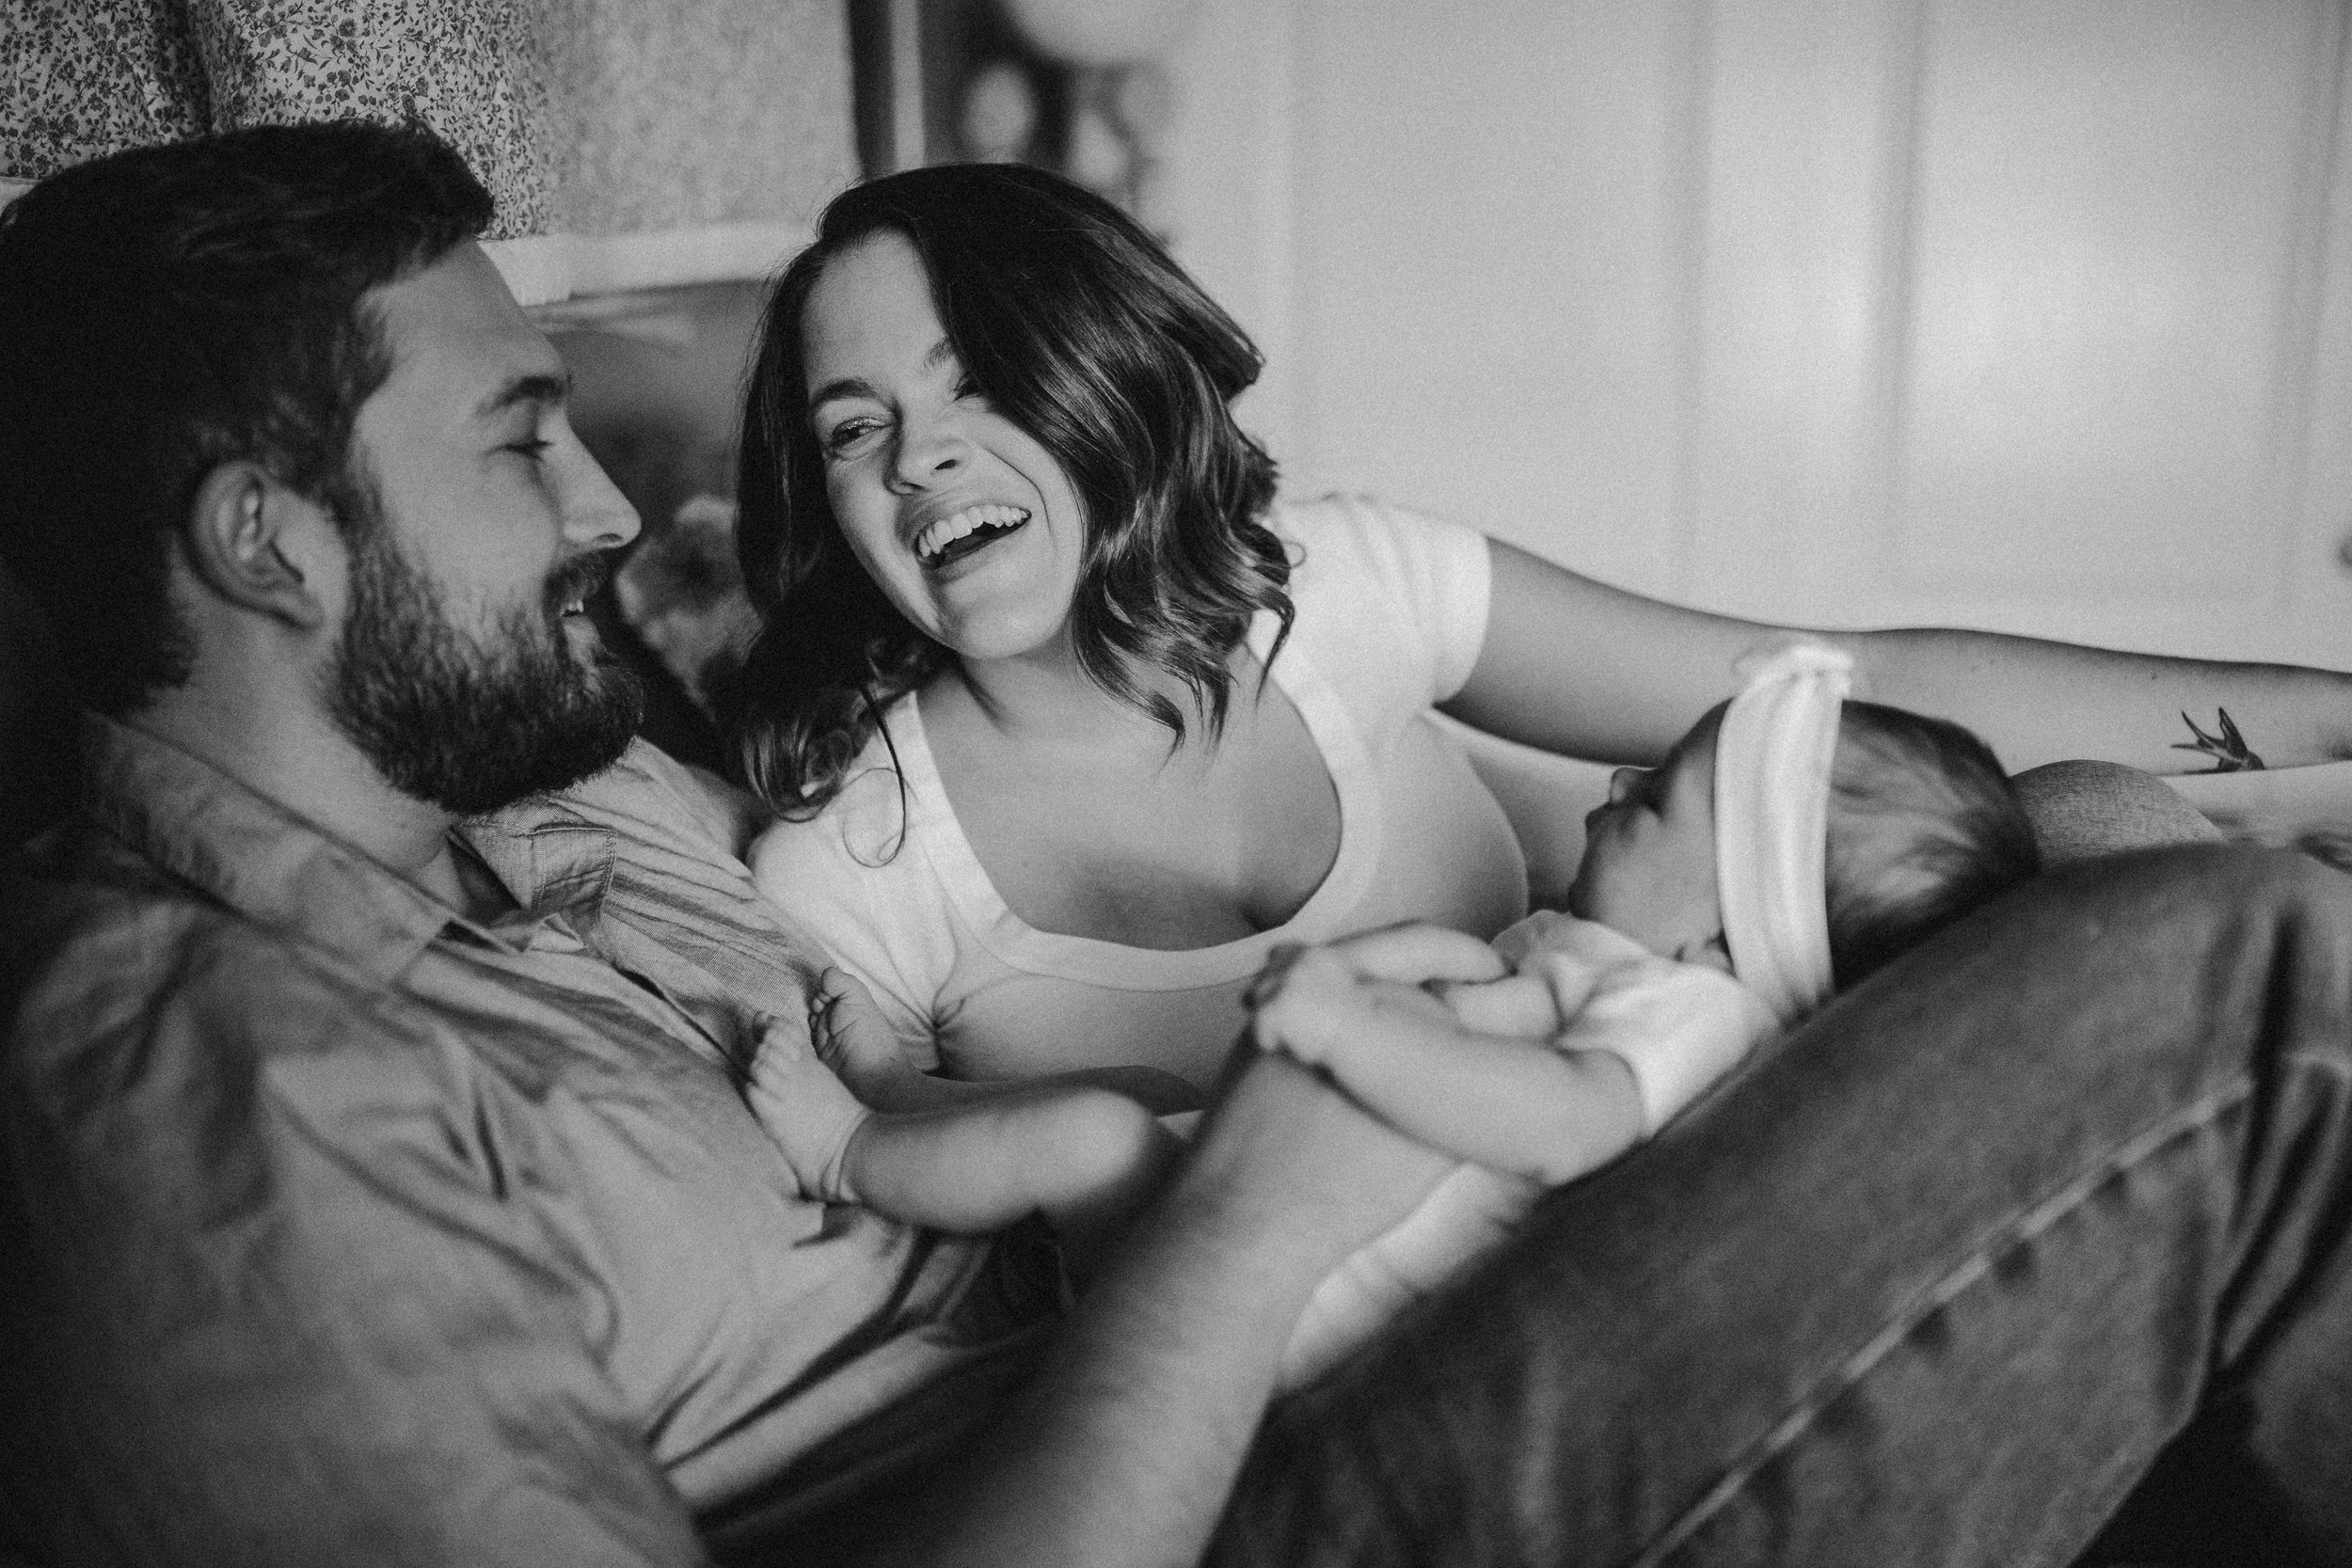 Archer_Inspired_Photography_Bakersfield_Holm_Family_Newborn-98.jpg